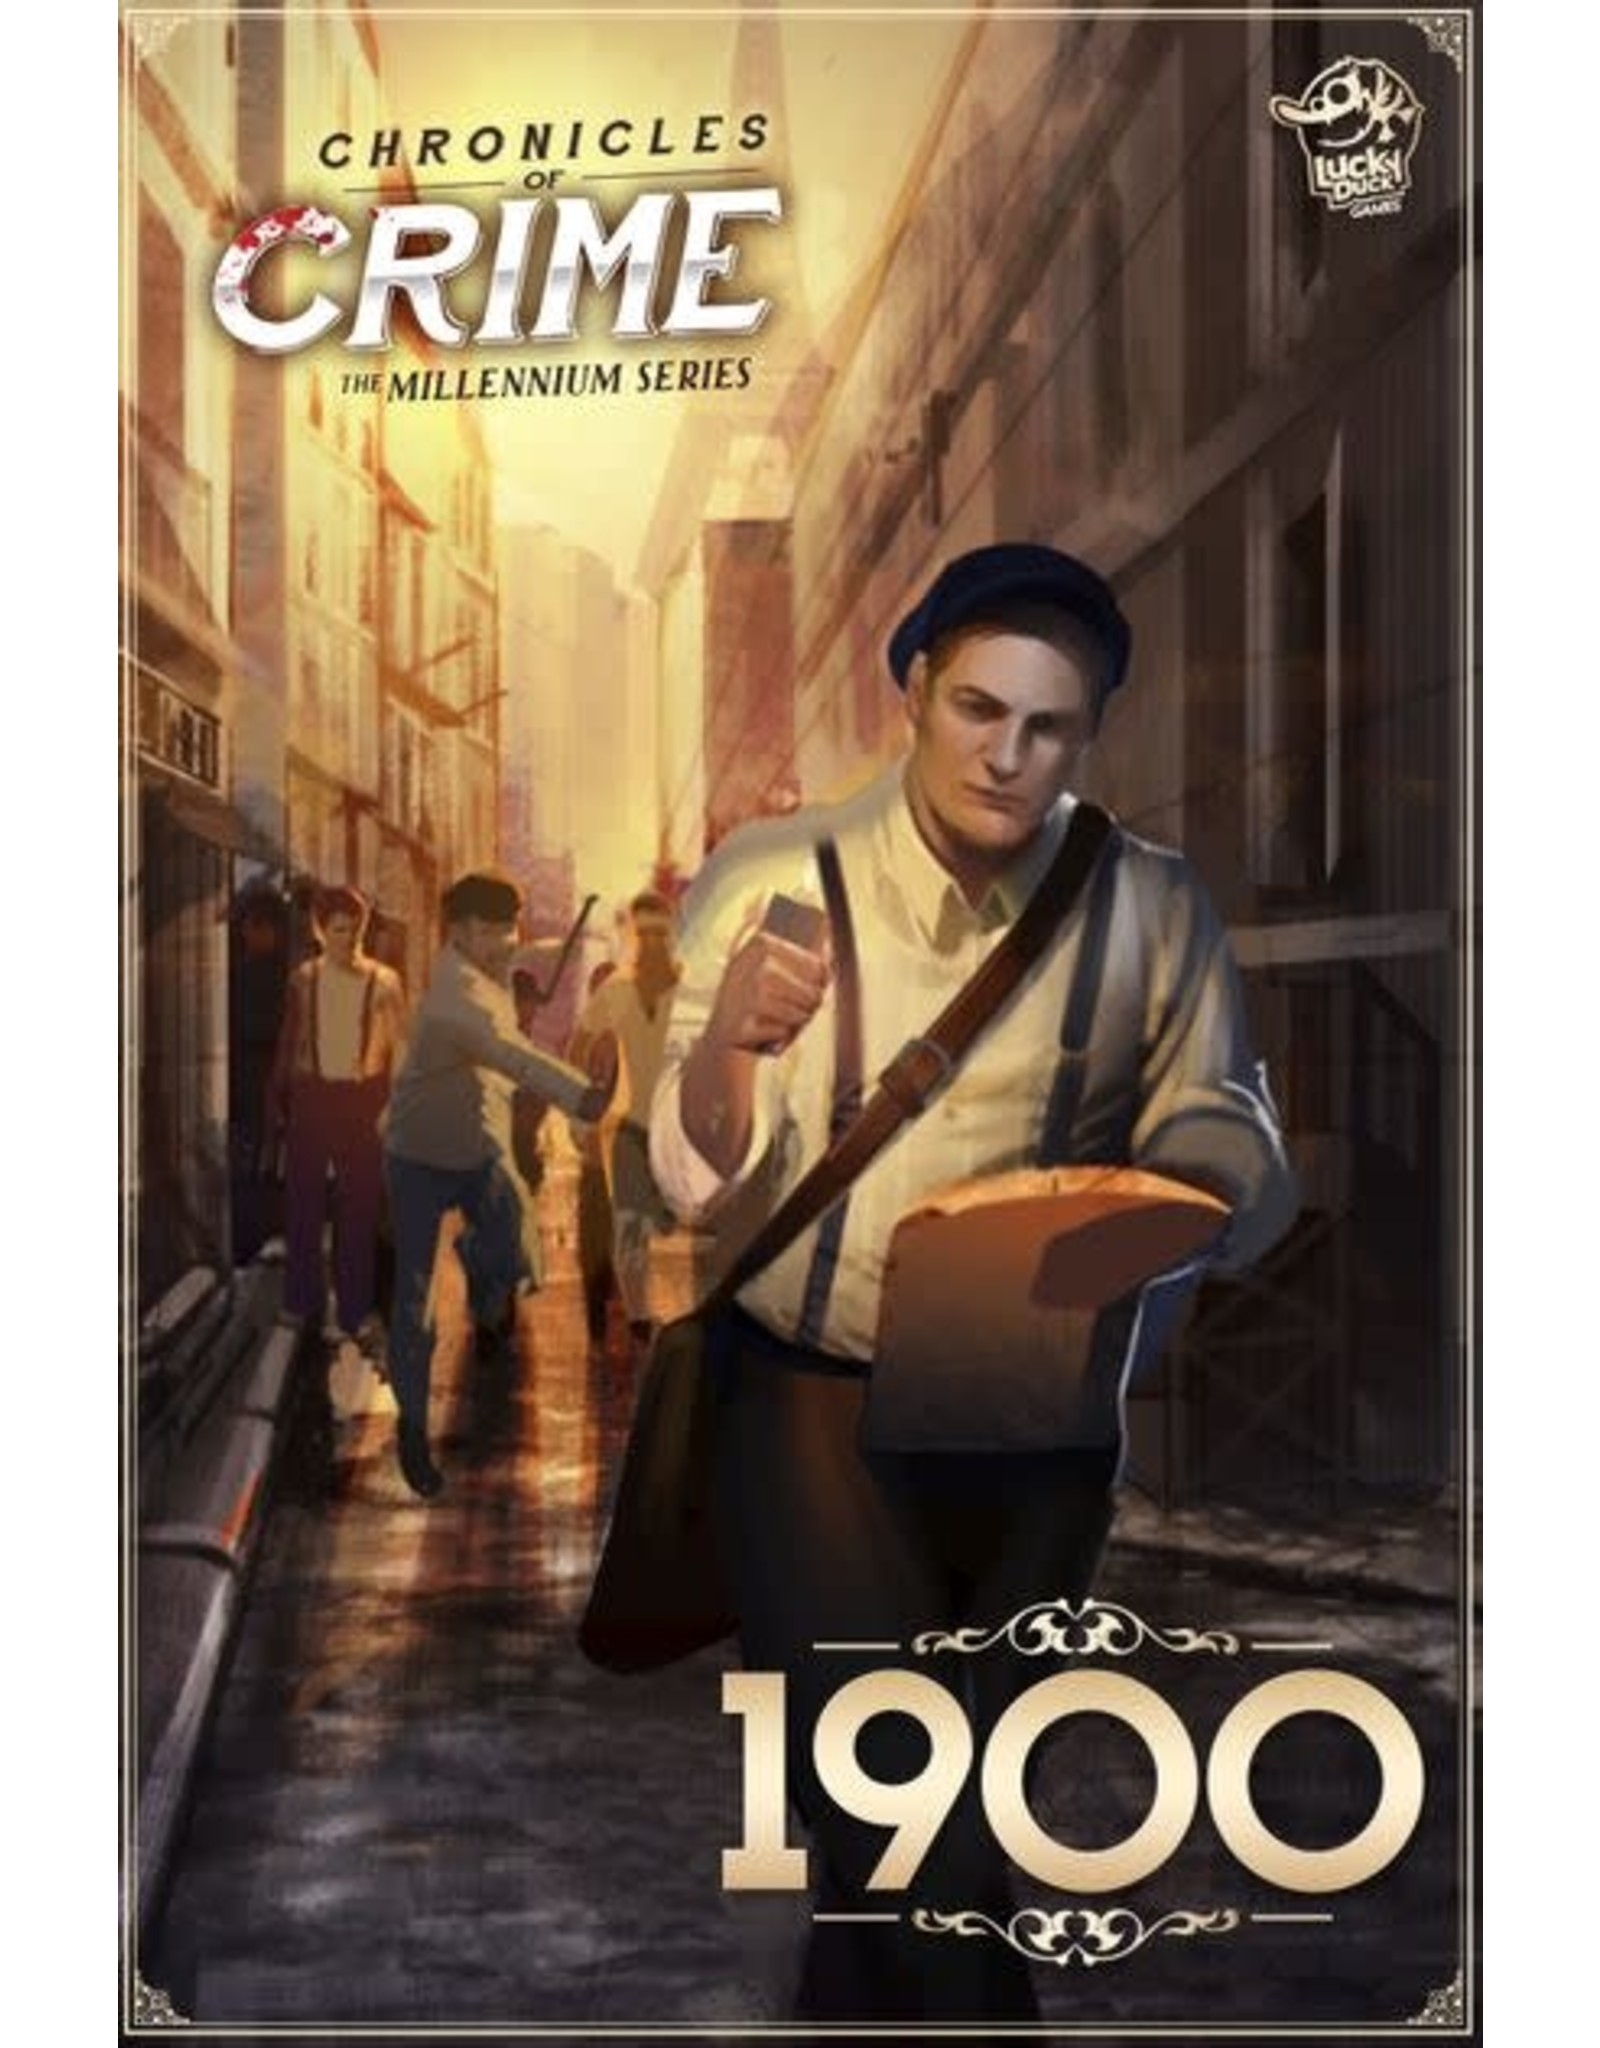 CHRONICLES OF CRIME 1900 STANDALONE EXPANSION